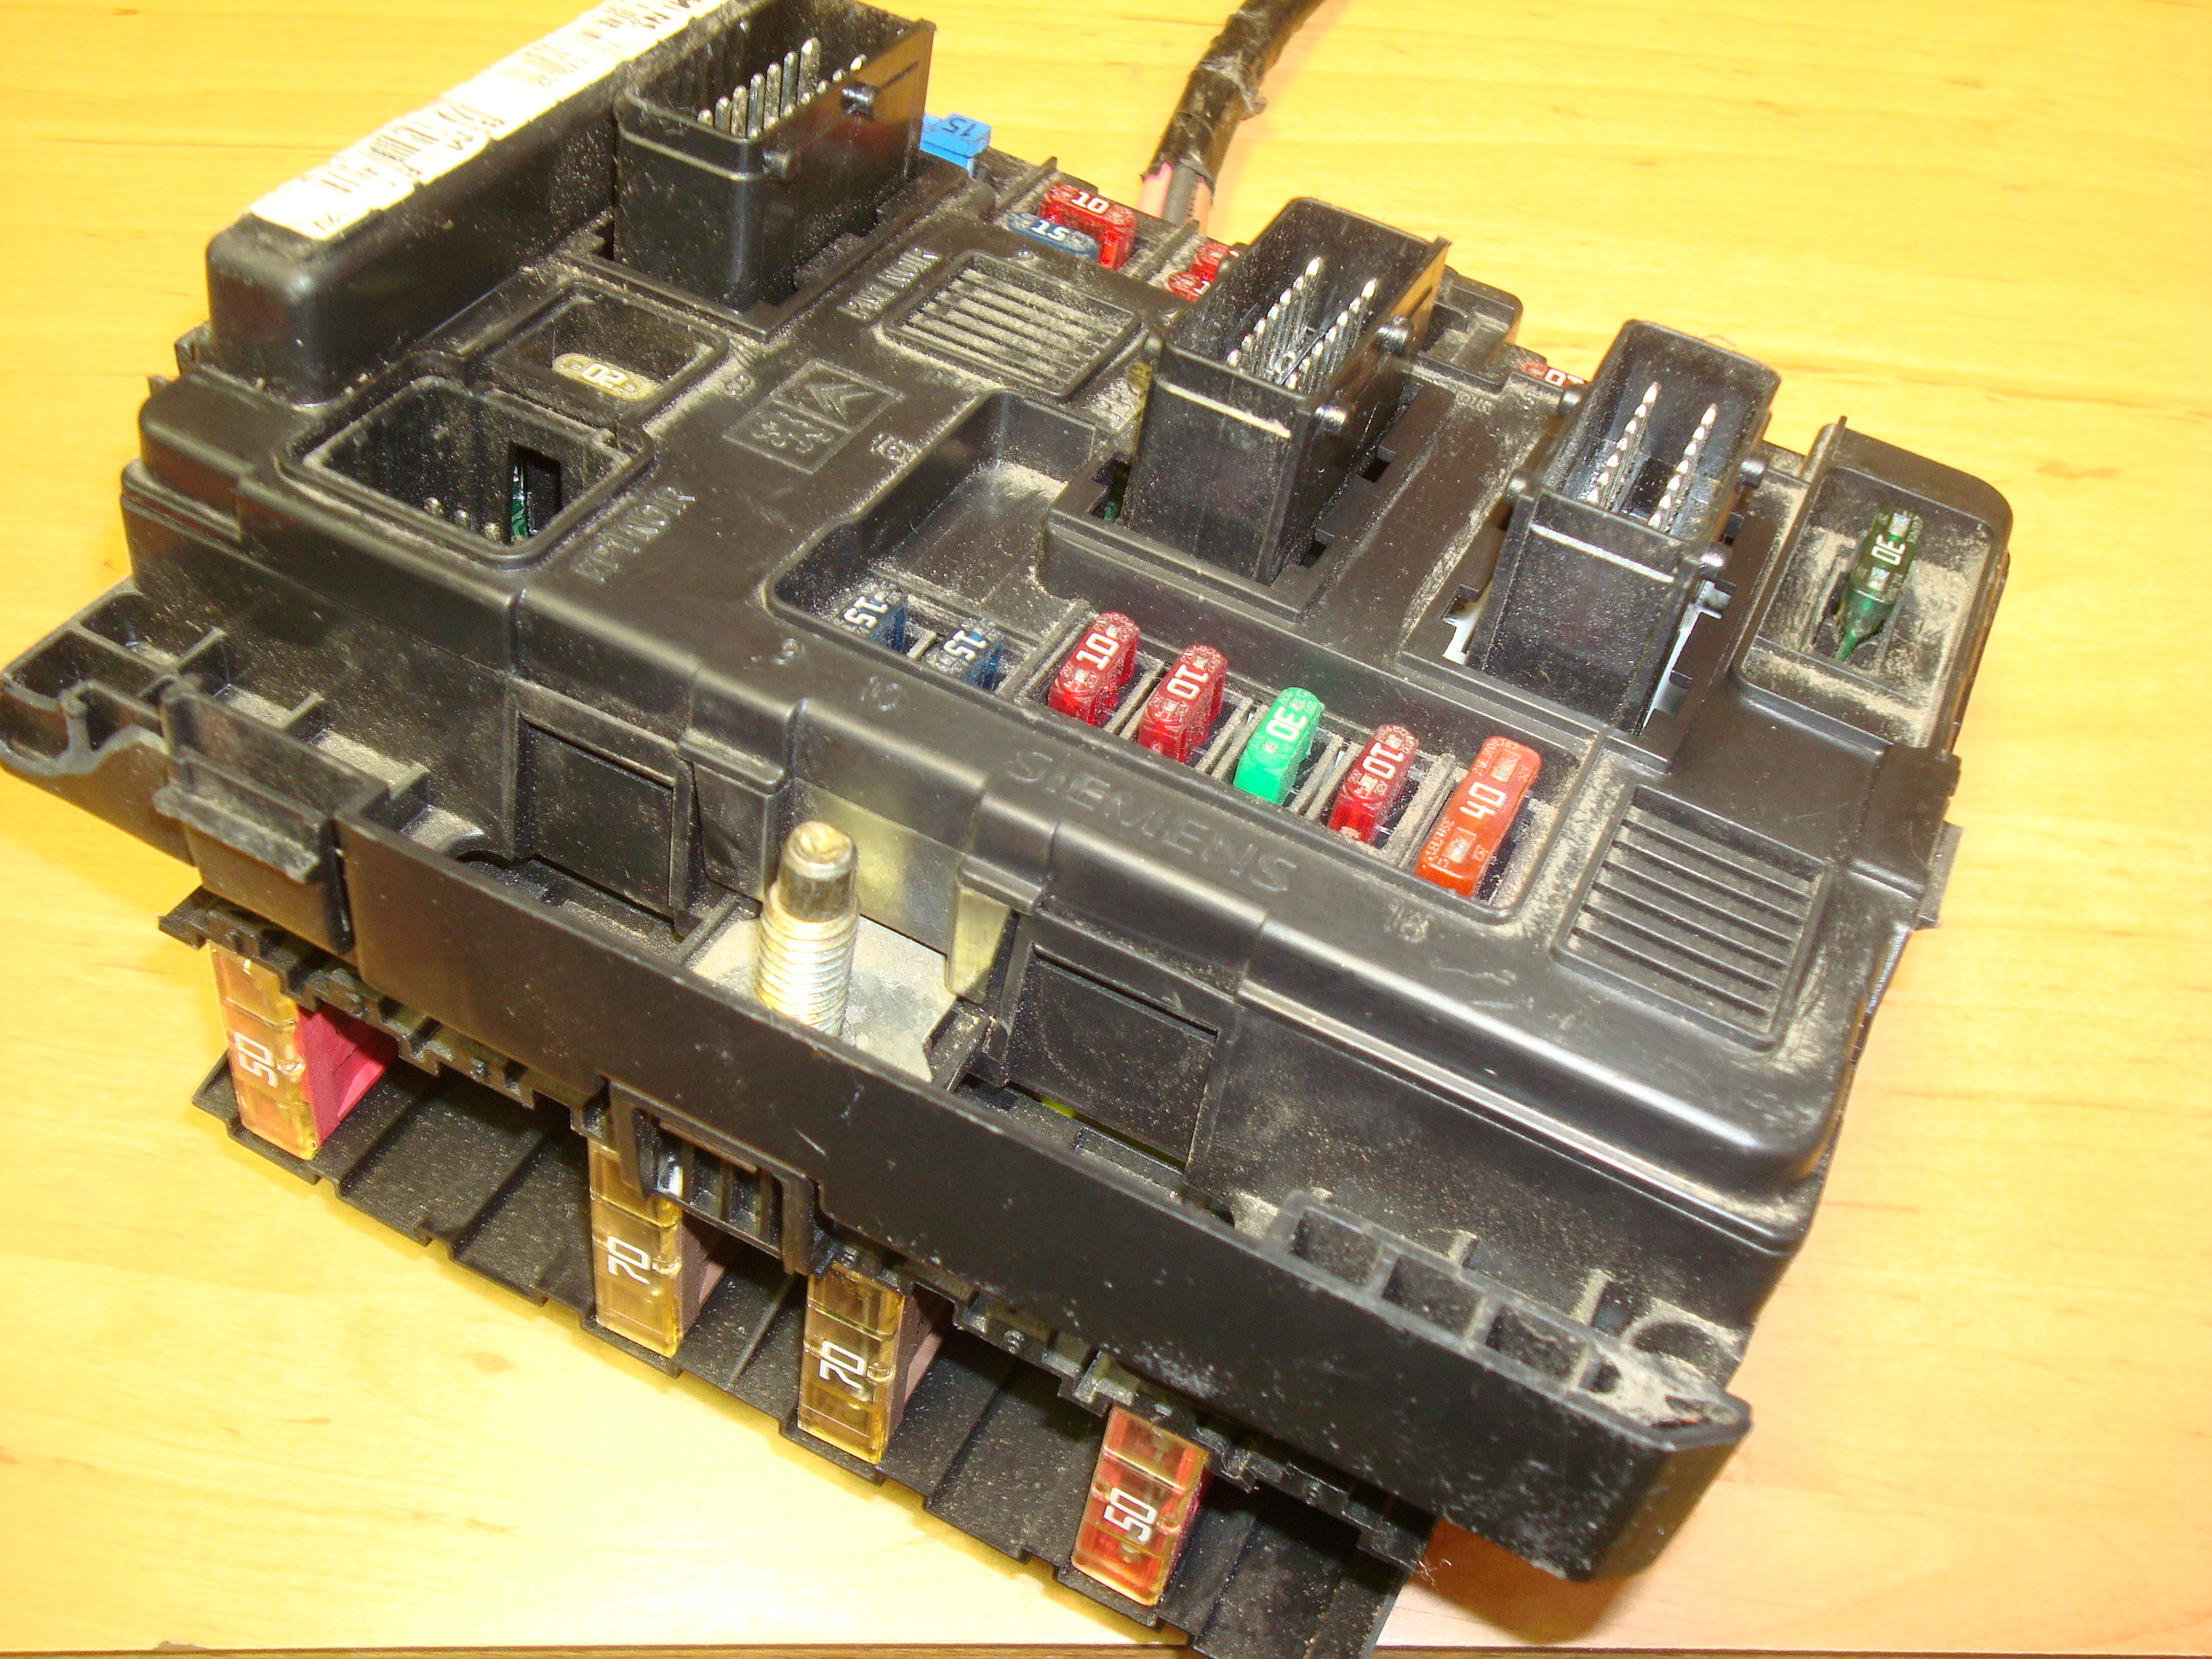 Peugeot 106 Fuse Box Wiring Library 306 Relays Citroen Relay Ecu Article T118470002 Siemens